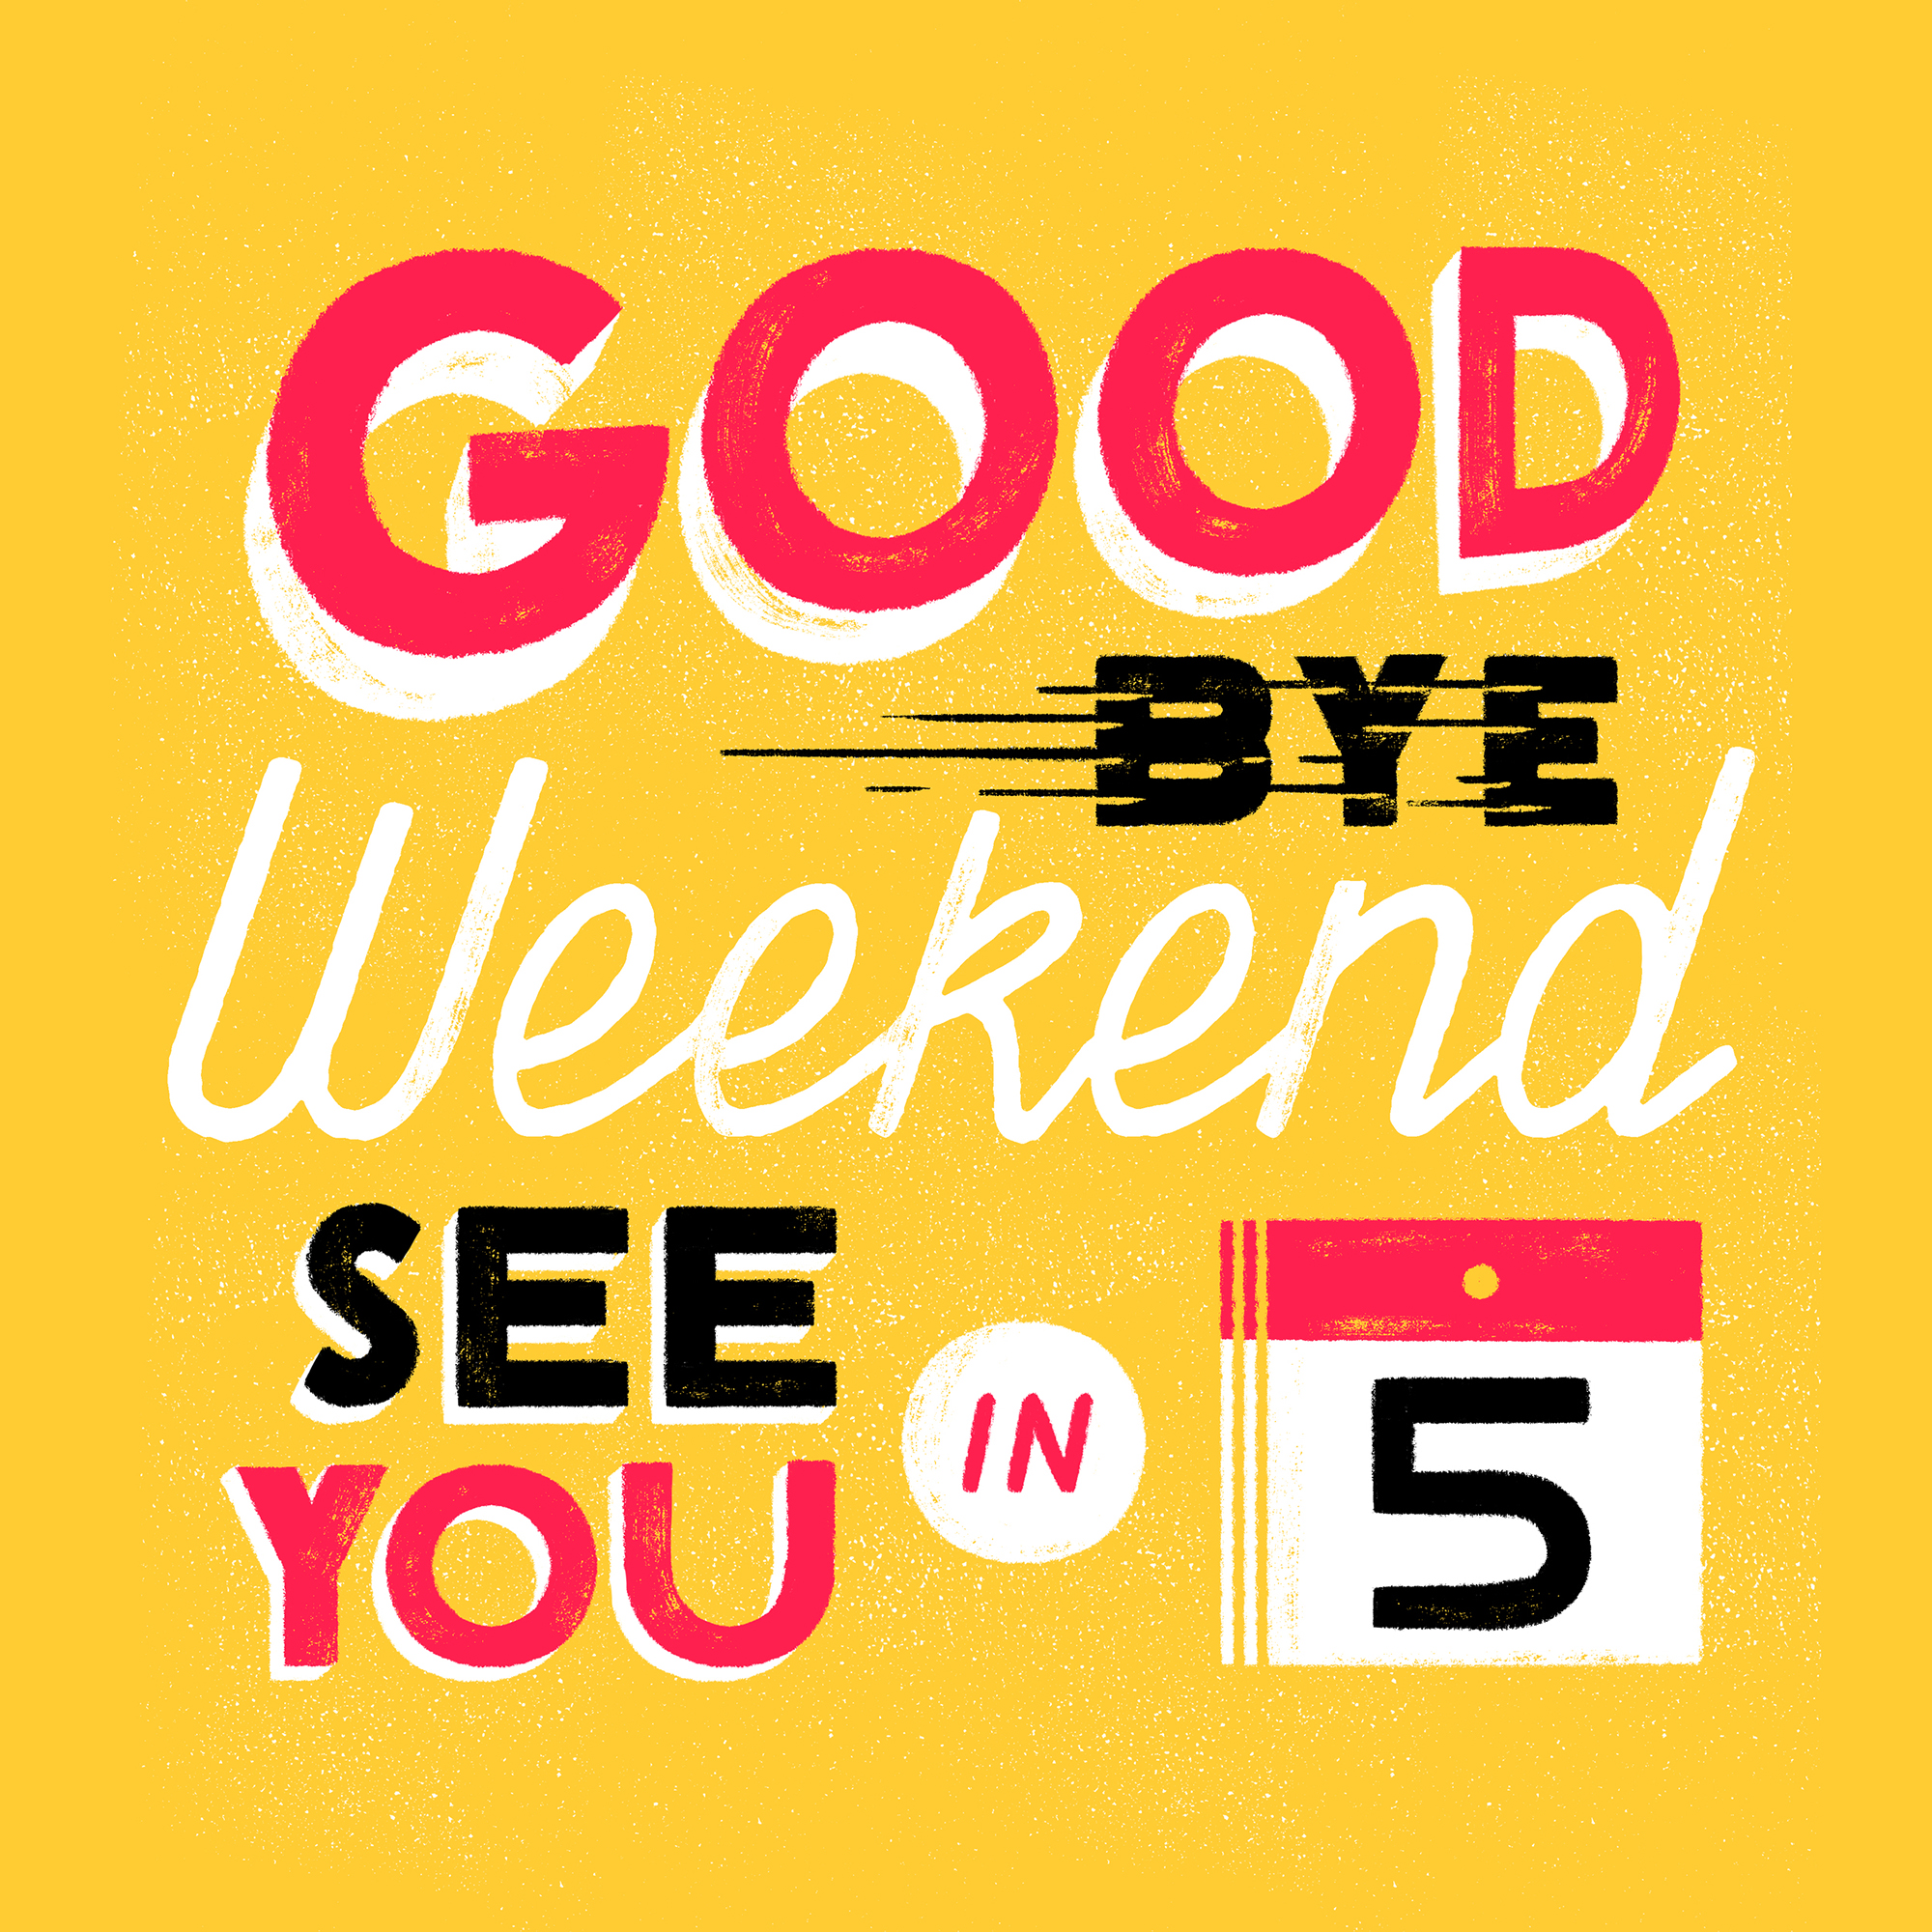 GoodByeWeekend